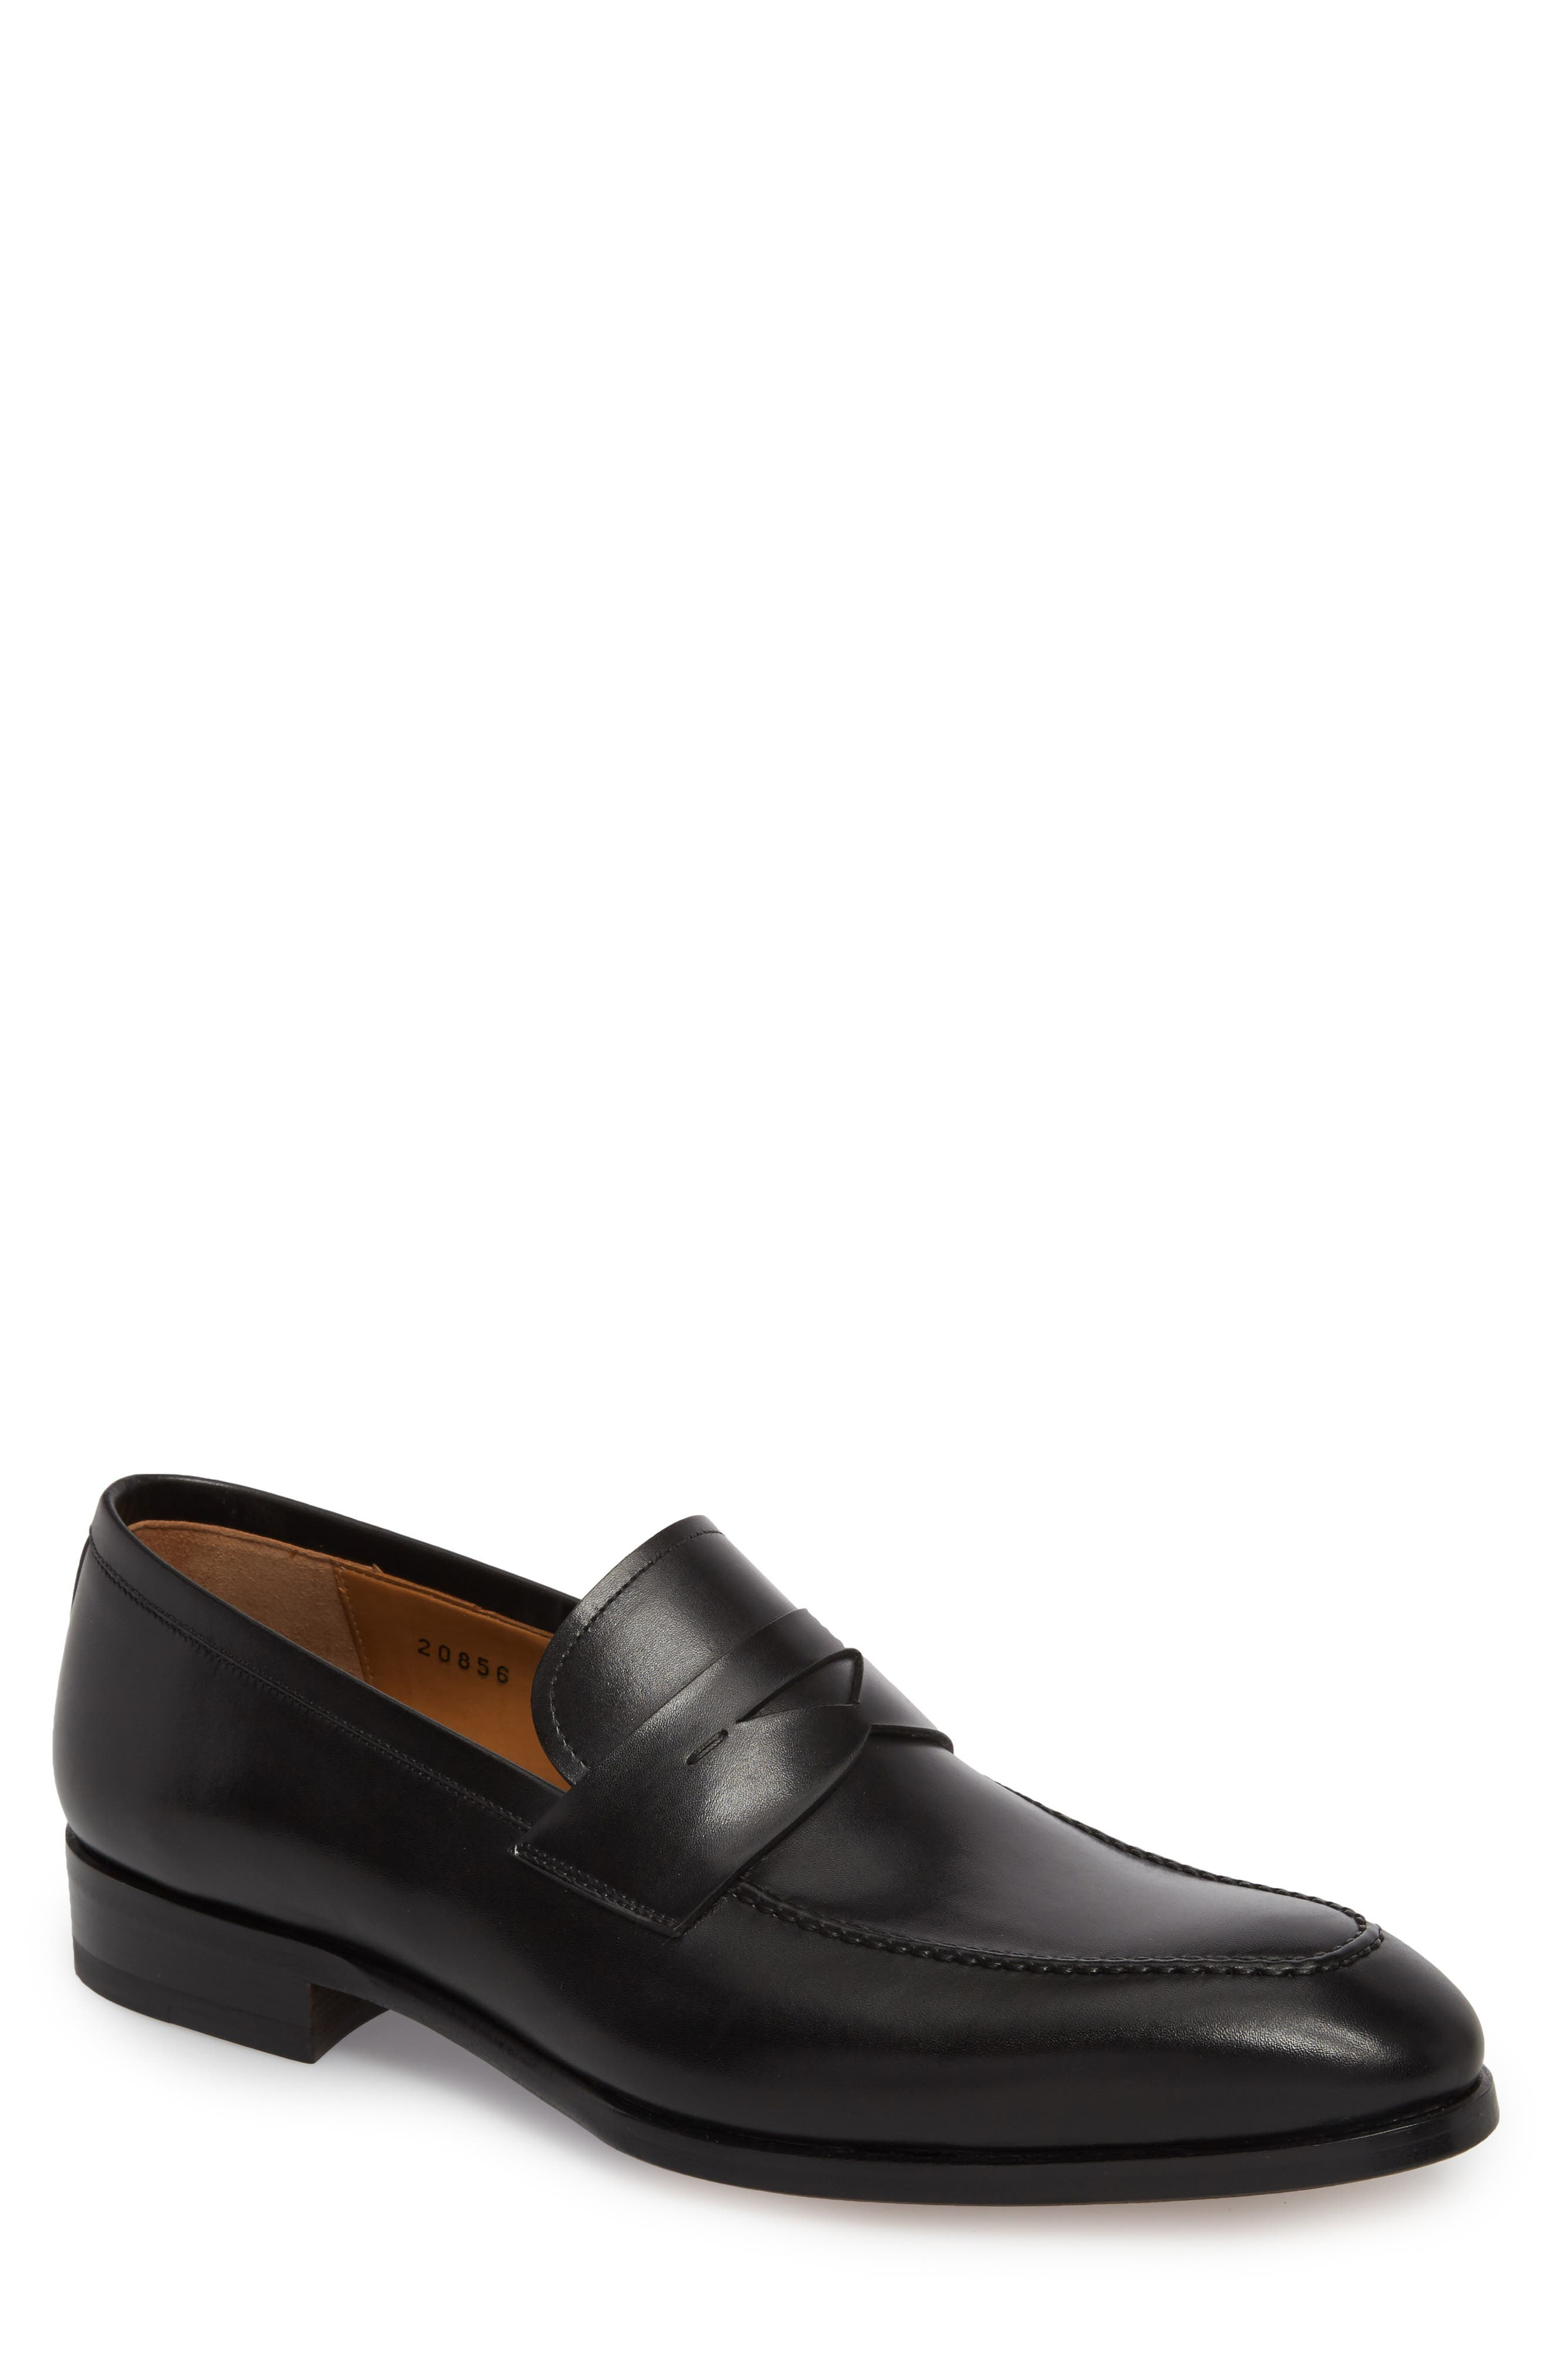 Rolly Apron Toe Penny Loafer,                             Main thumbnail 1, color,                             BLACK LEATHER